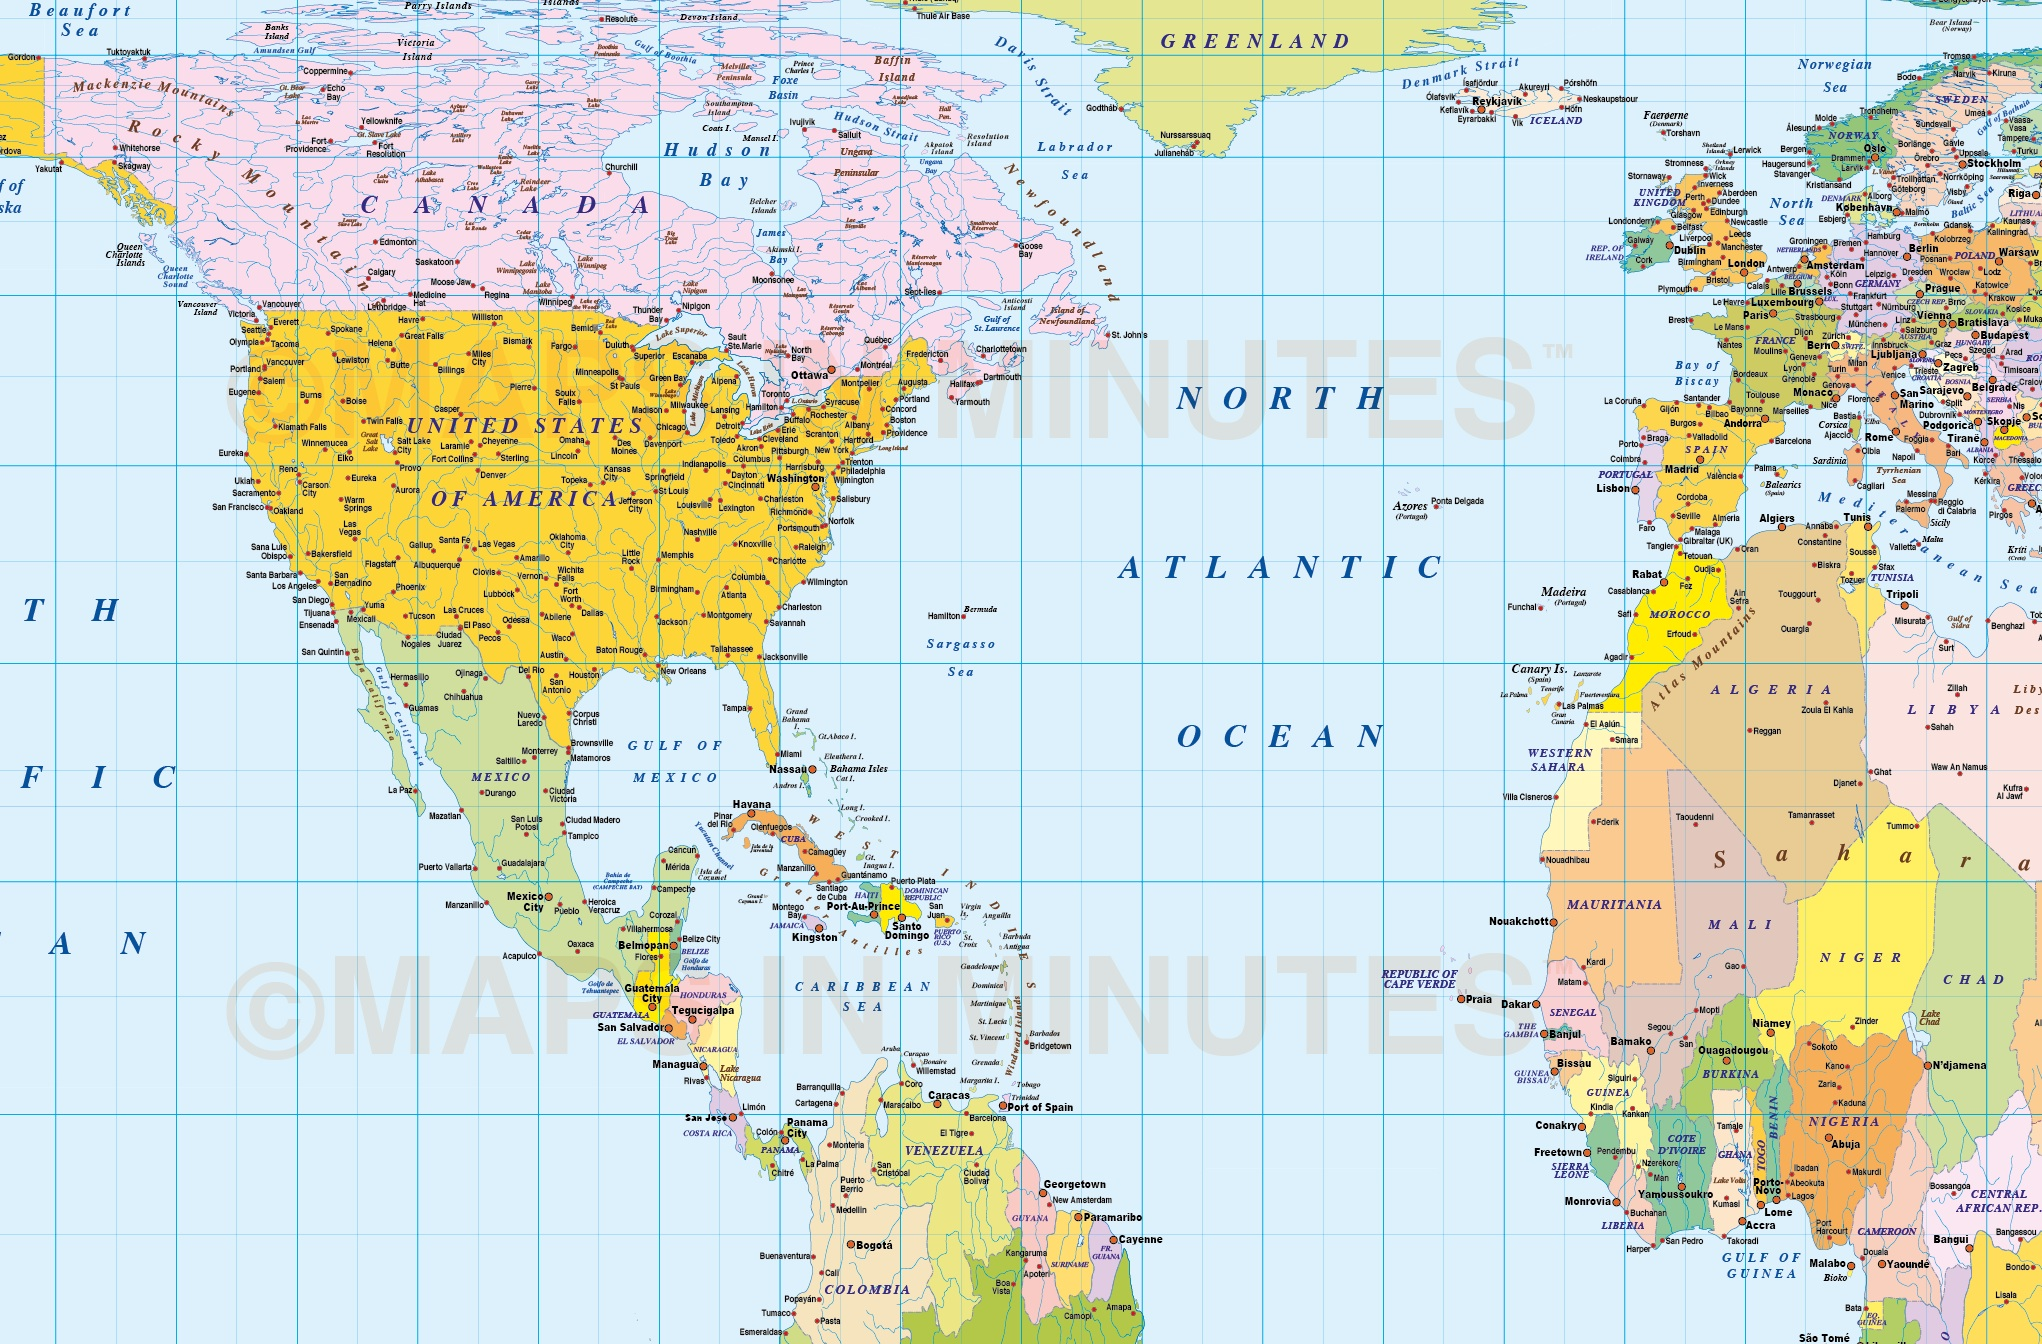 Medium scale digital vector world map in gall orthographic digital vector world map in gall orthographic projection detail fully layered editable and royalty gumiabroncs Gallery